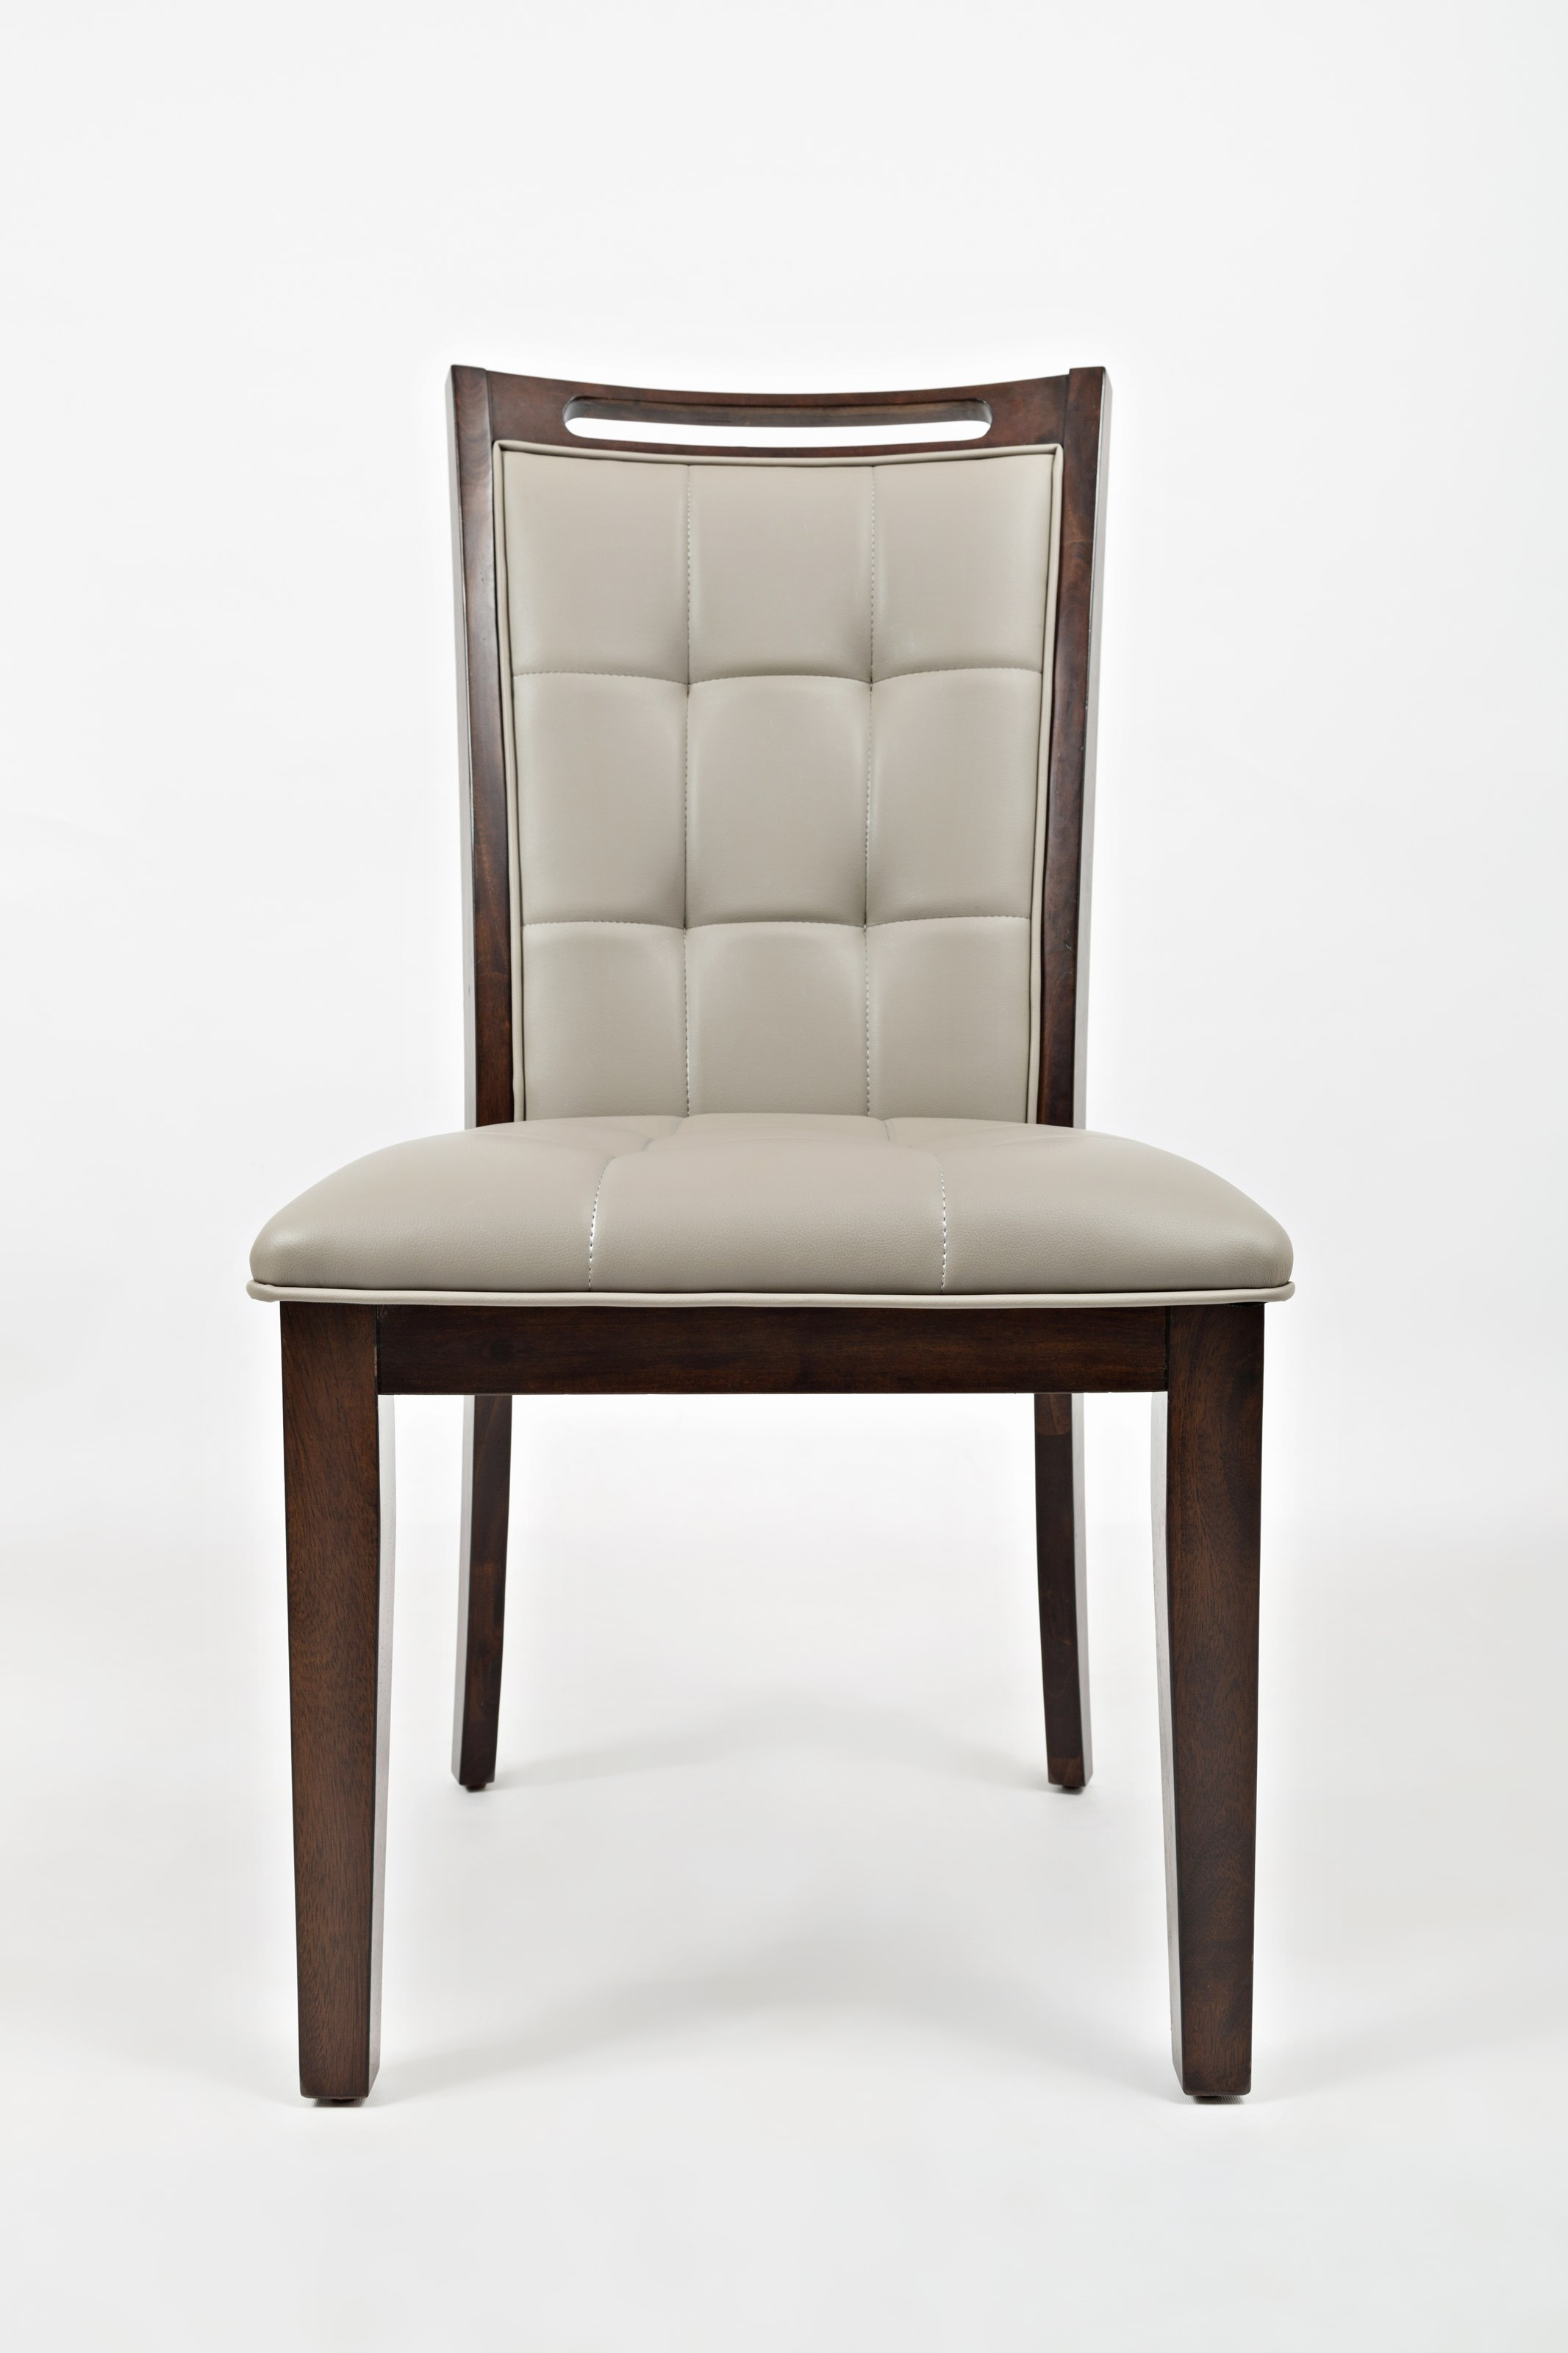 Manchester Upholstered Dining Chair by Jofran at Jofran